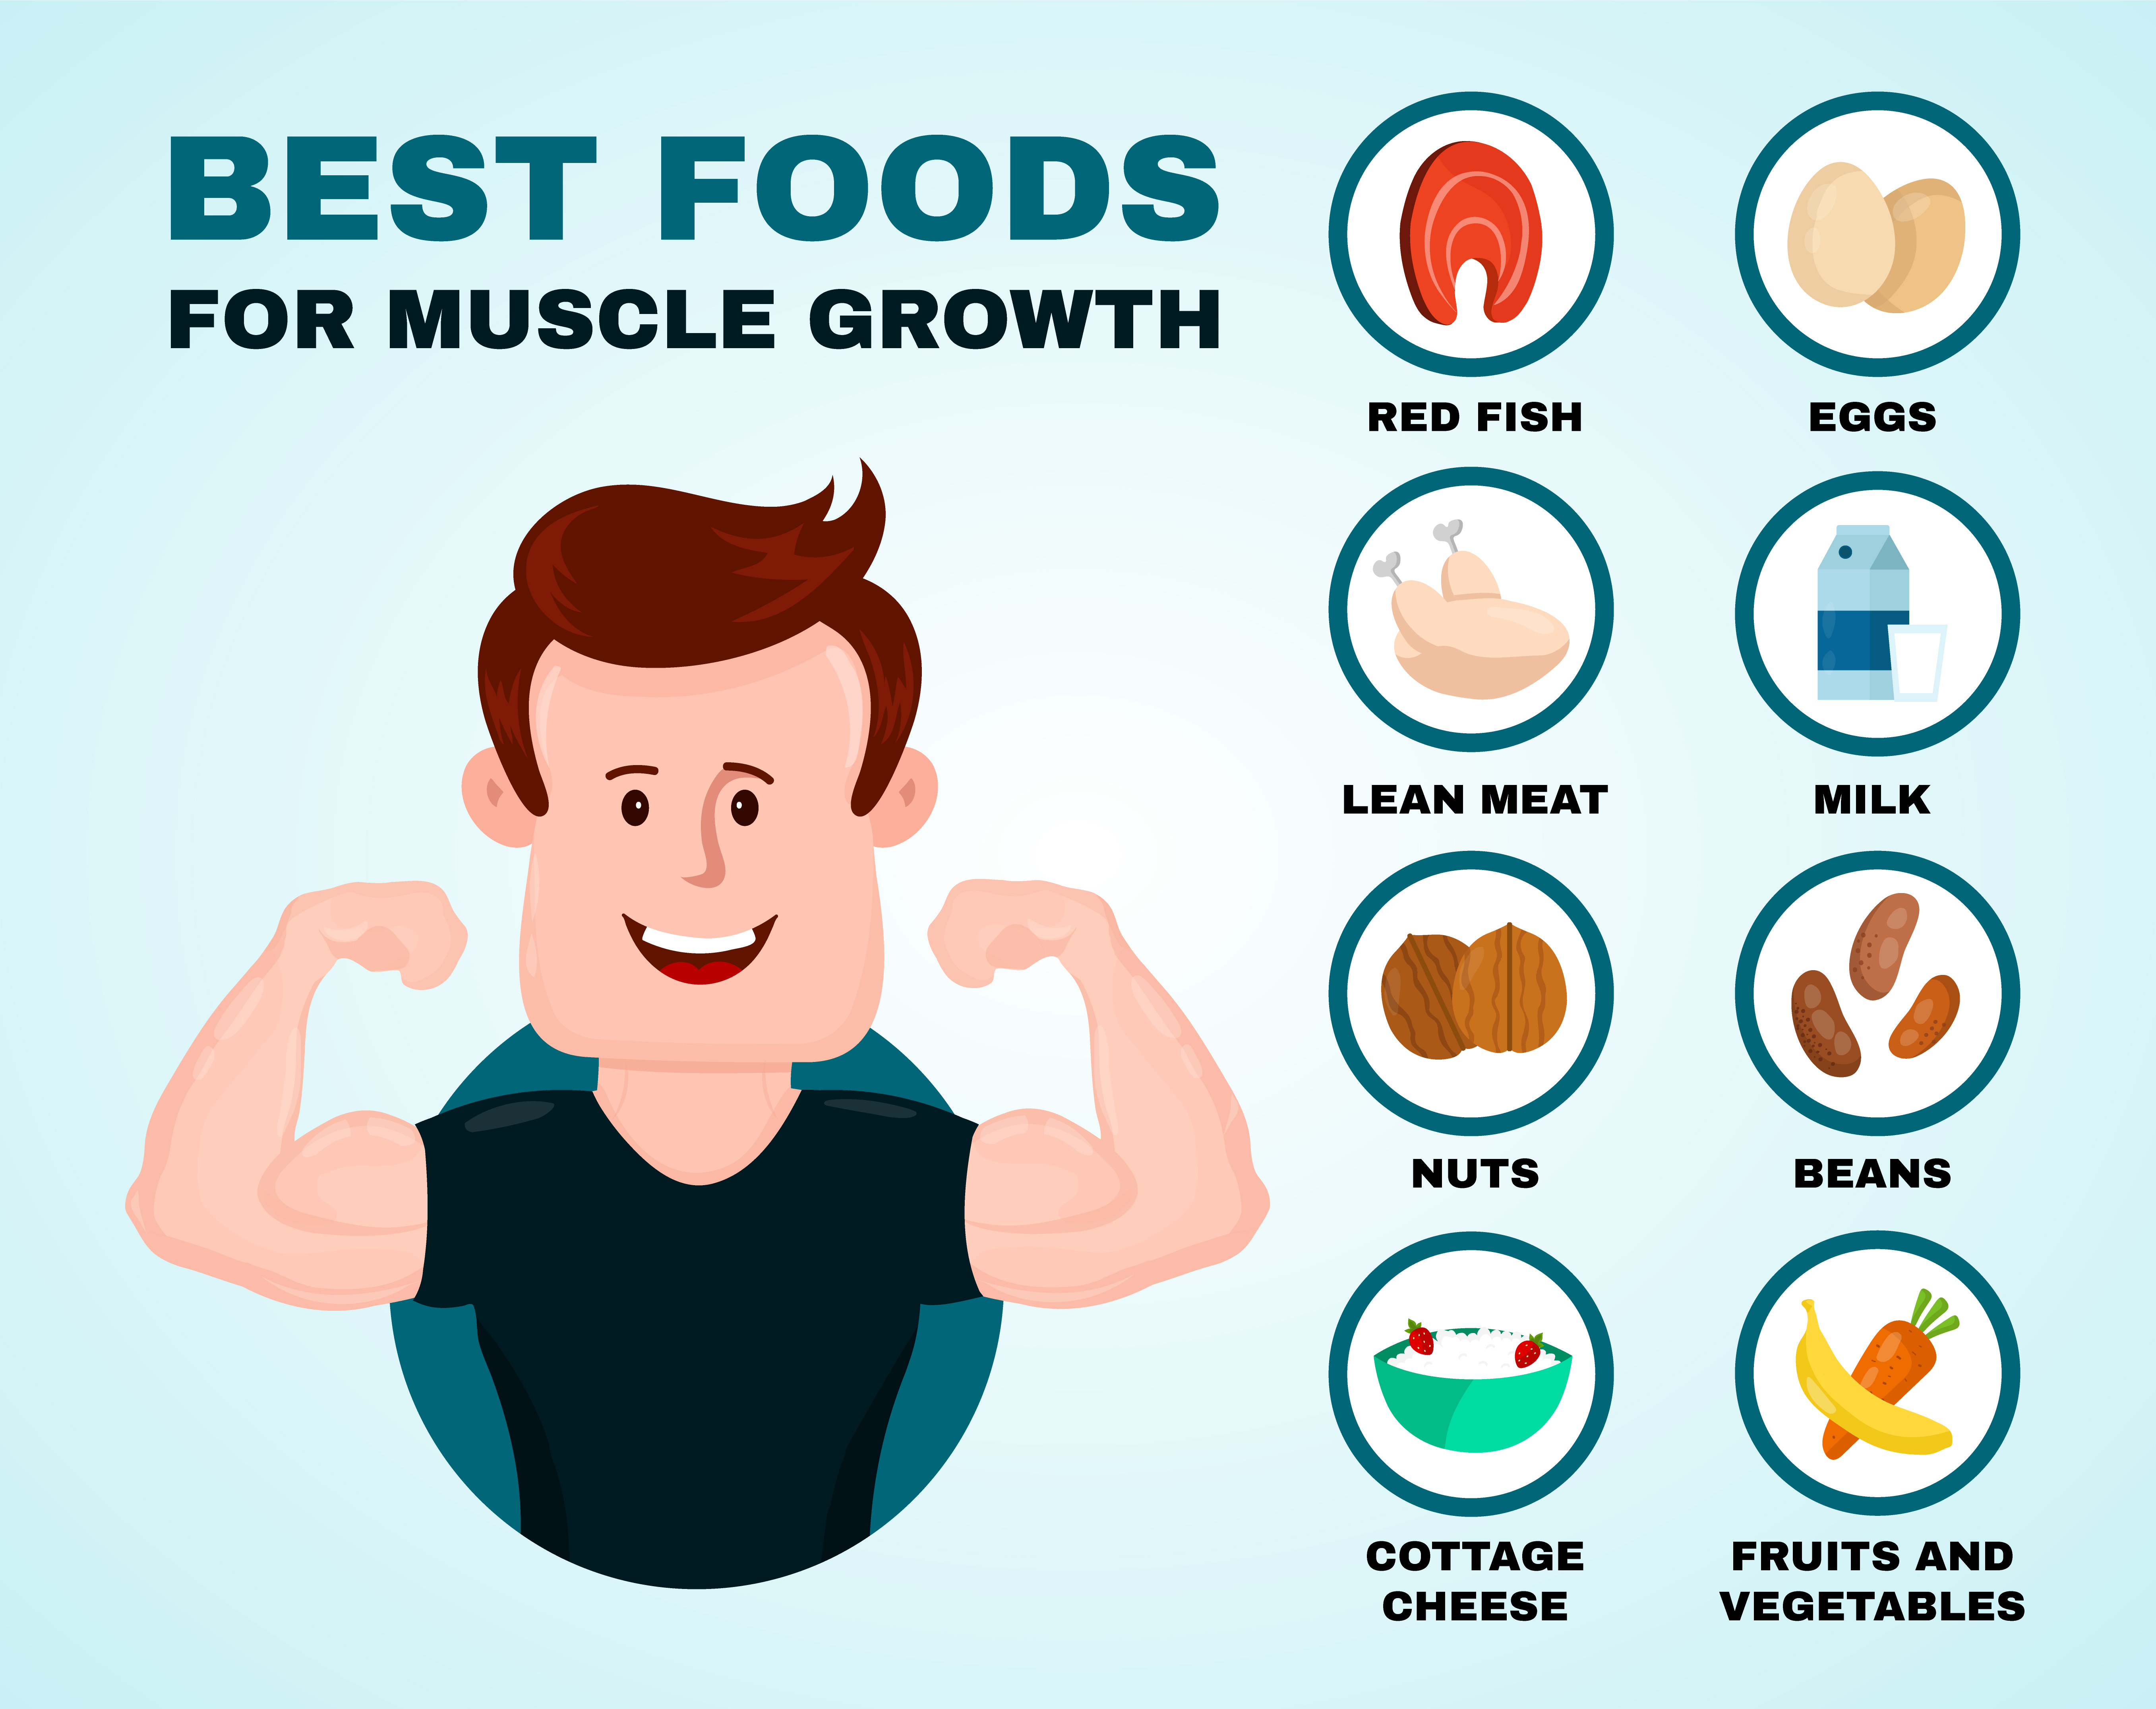 What to eat, to gain muscles optimally?